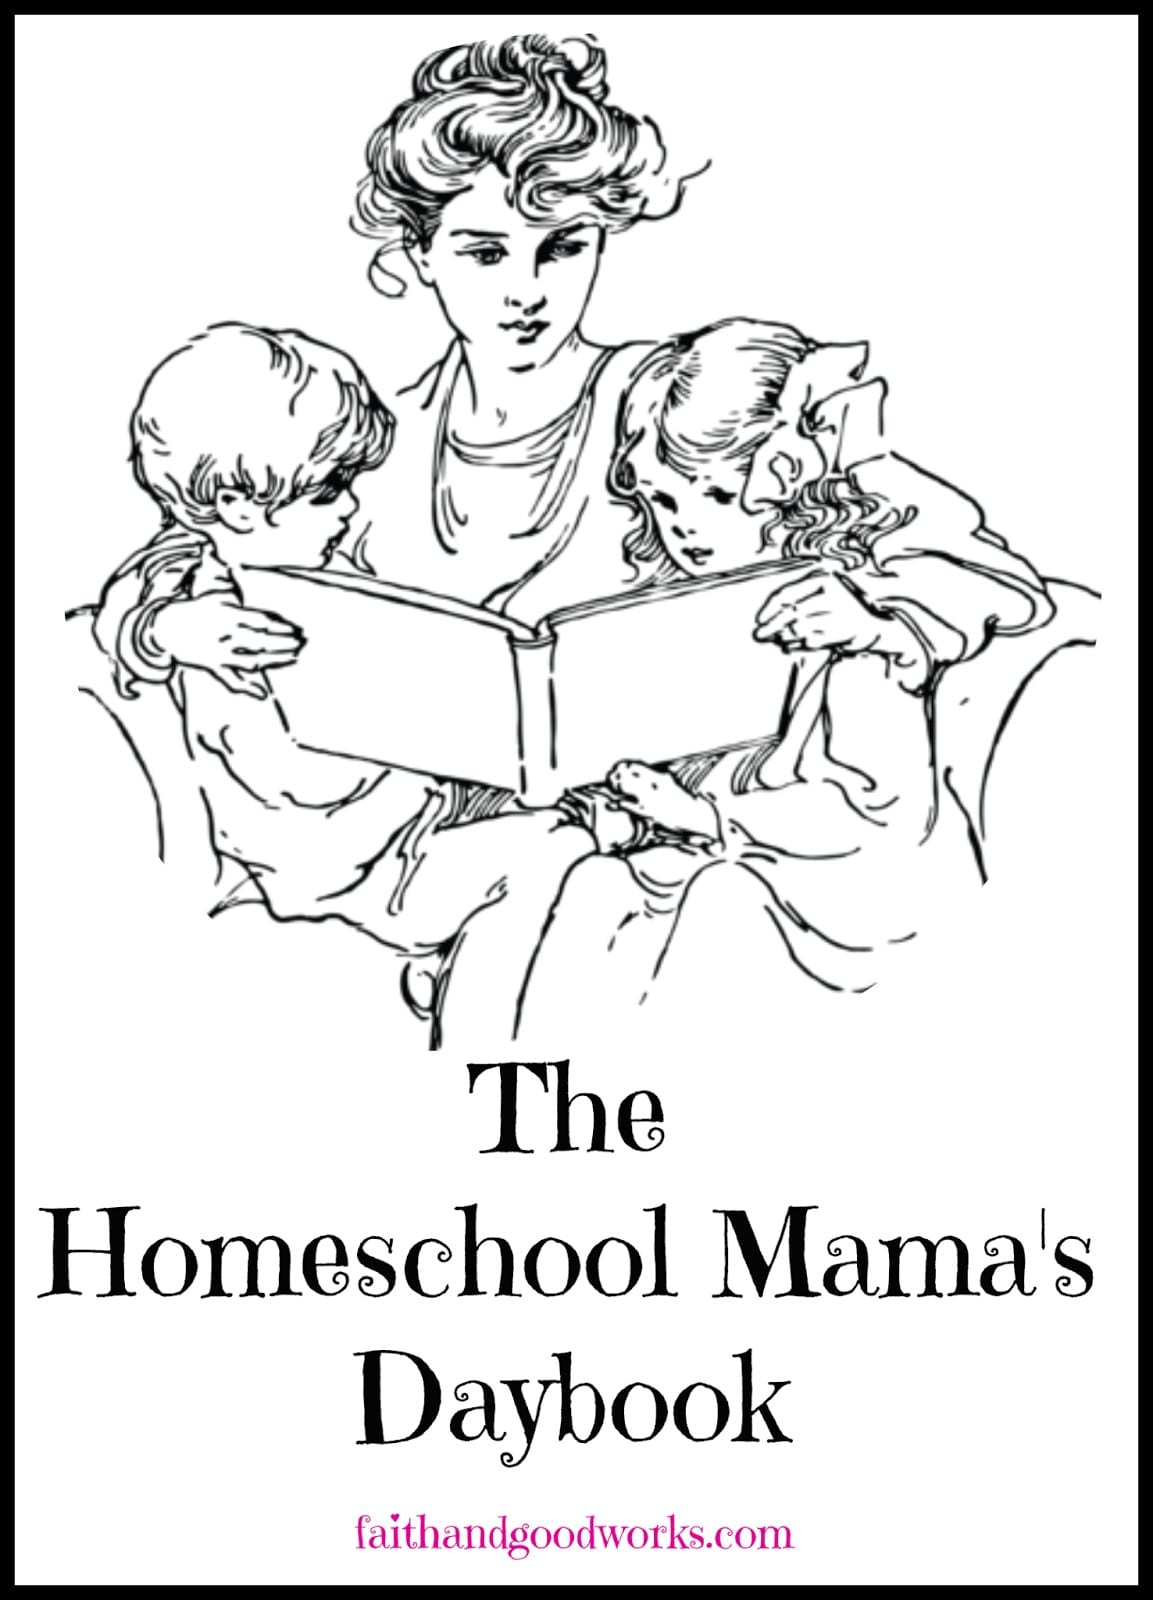 Homeschool Mama's Daybook – Week 1